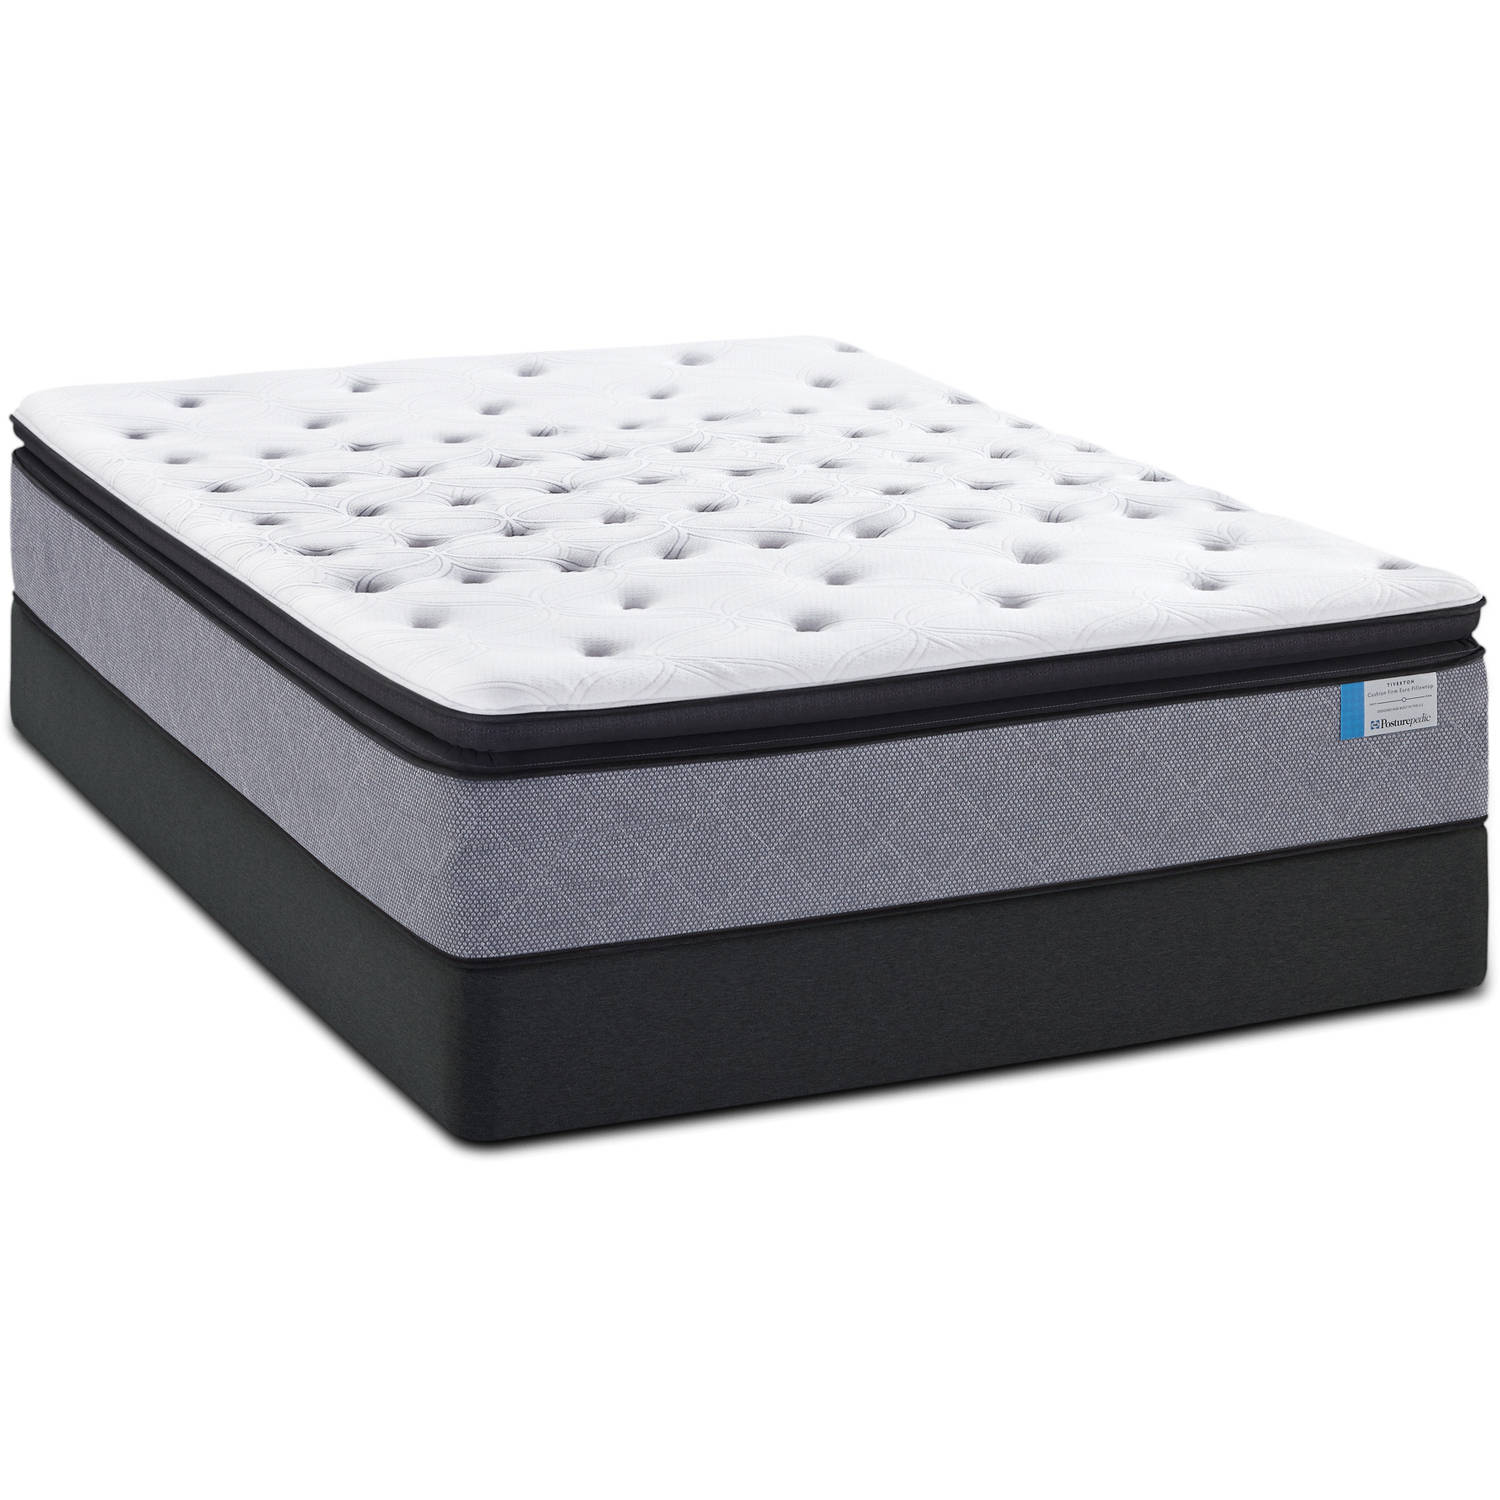 Sealy Posturepedic Plush Euro Pillowtop Chalone Mattress   Walmart com